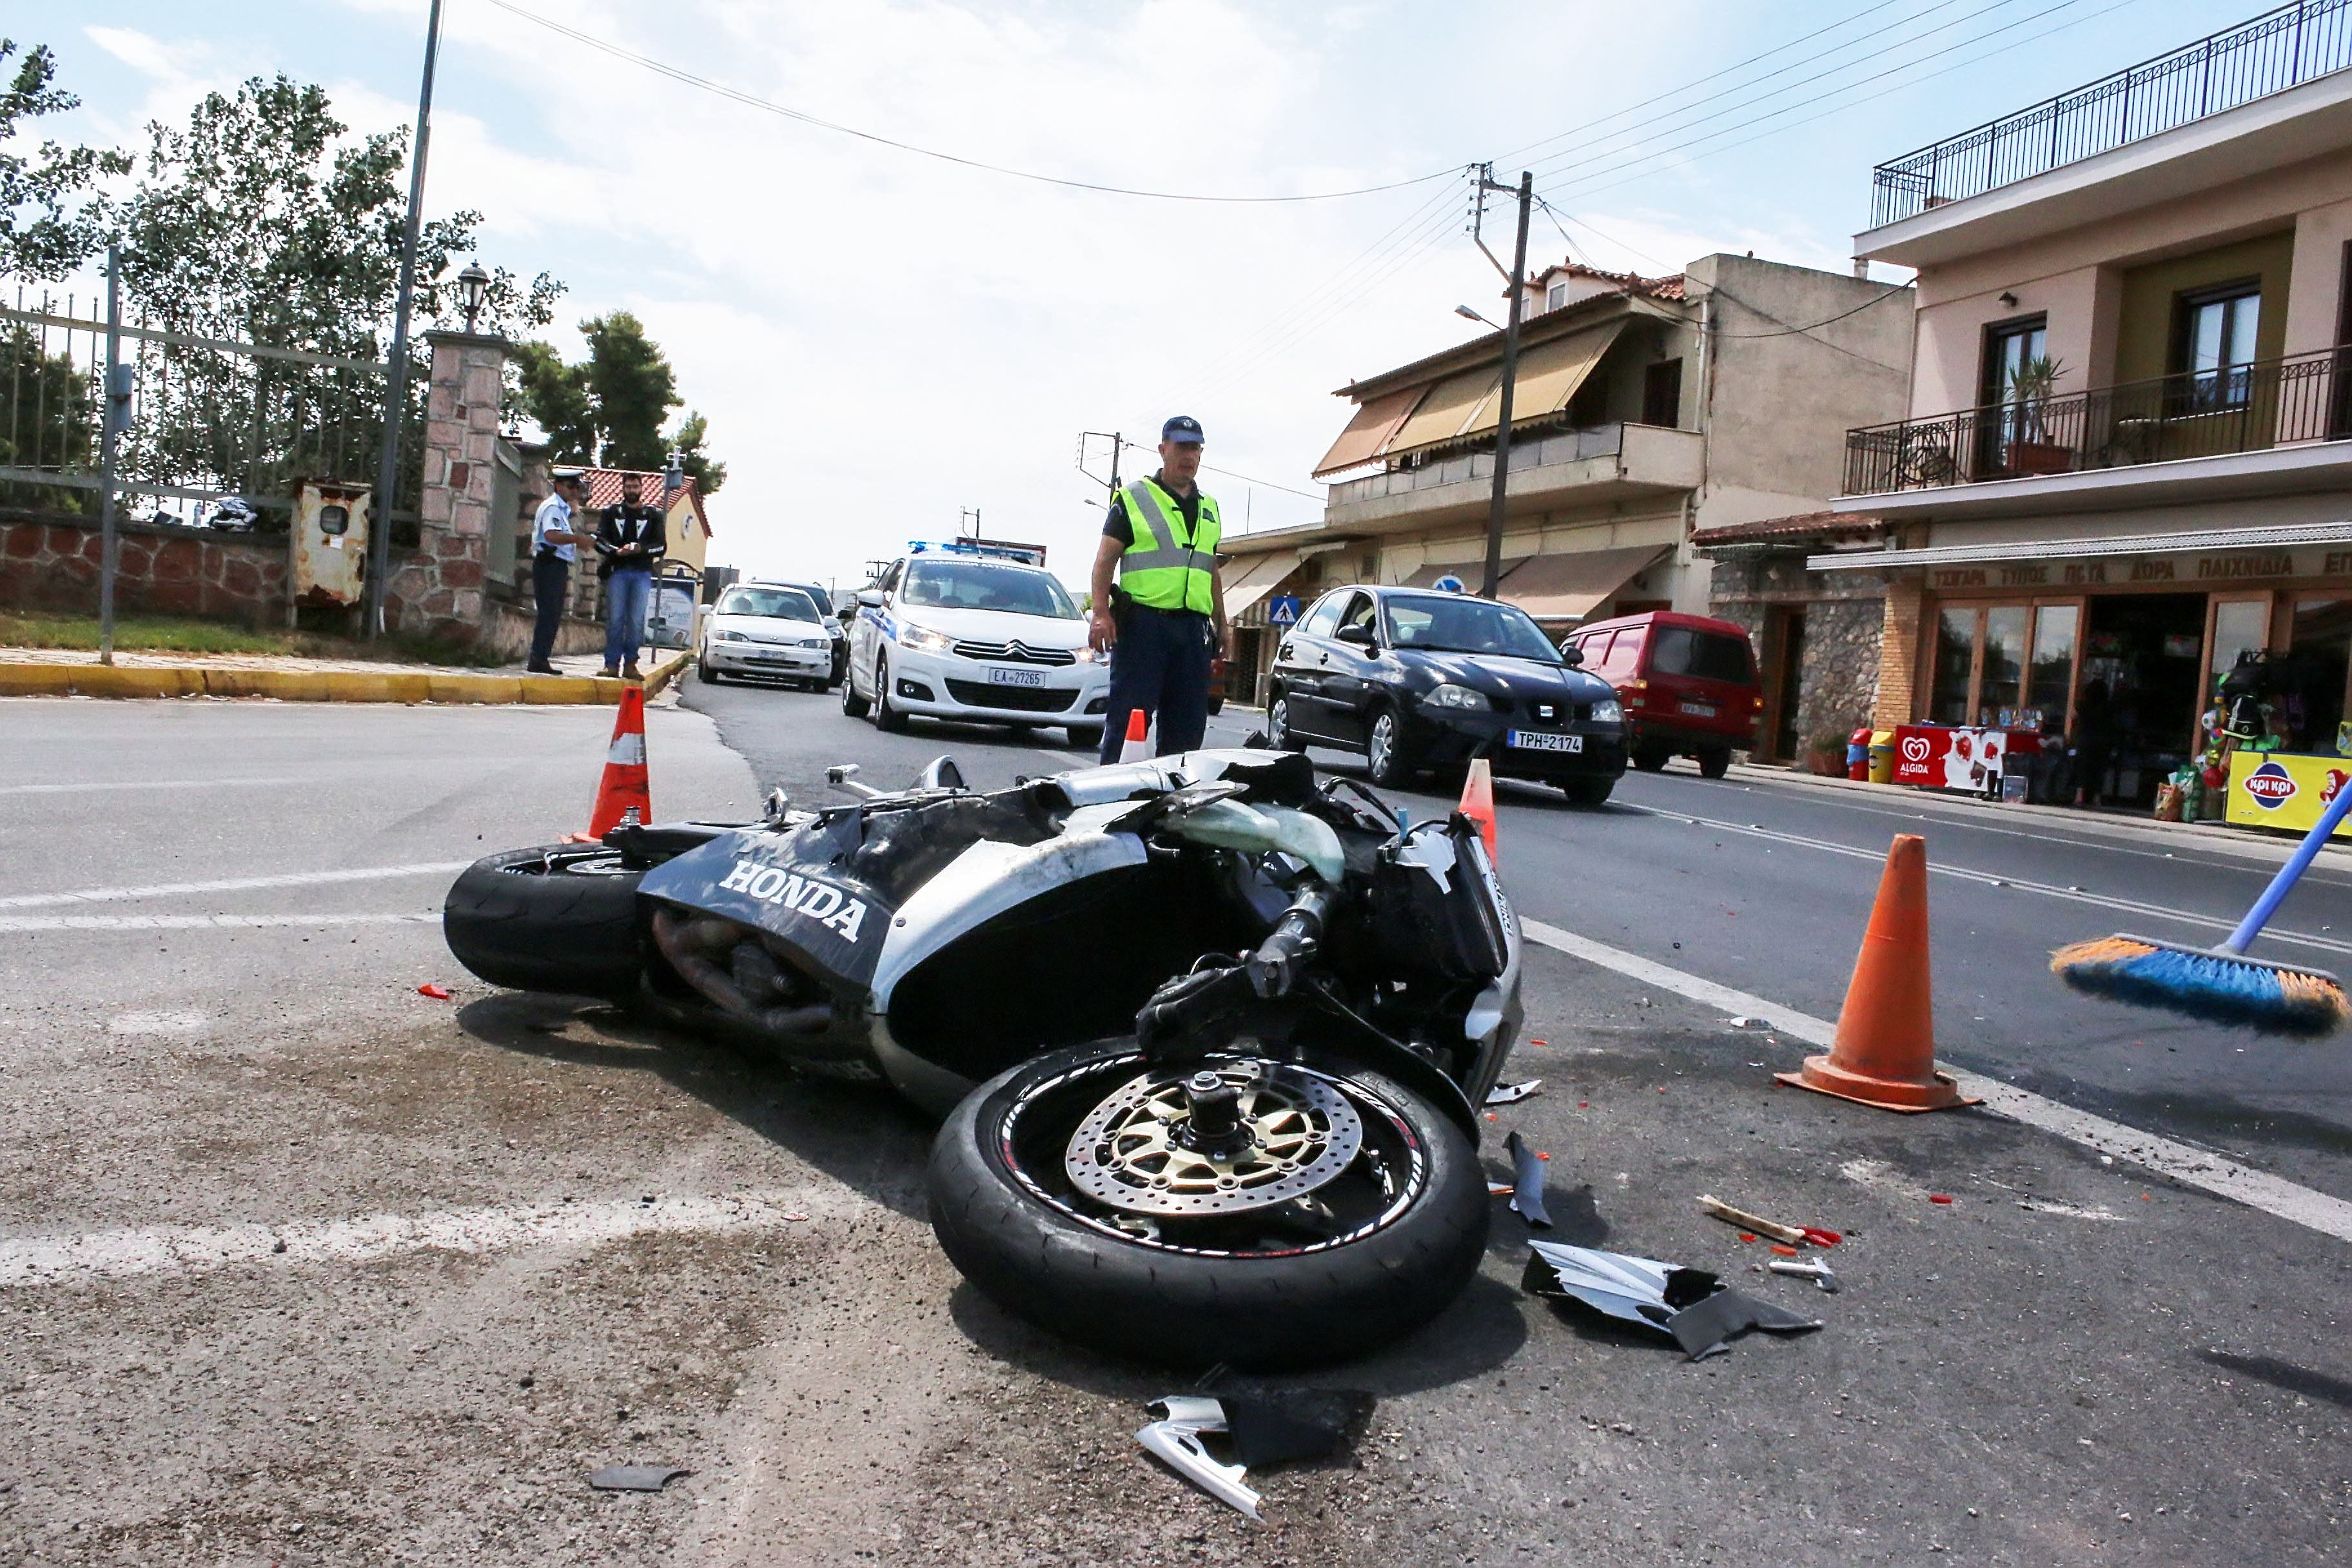 Motorcycle Crash - Motorcycle Surrounded By Cones